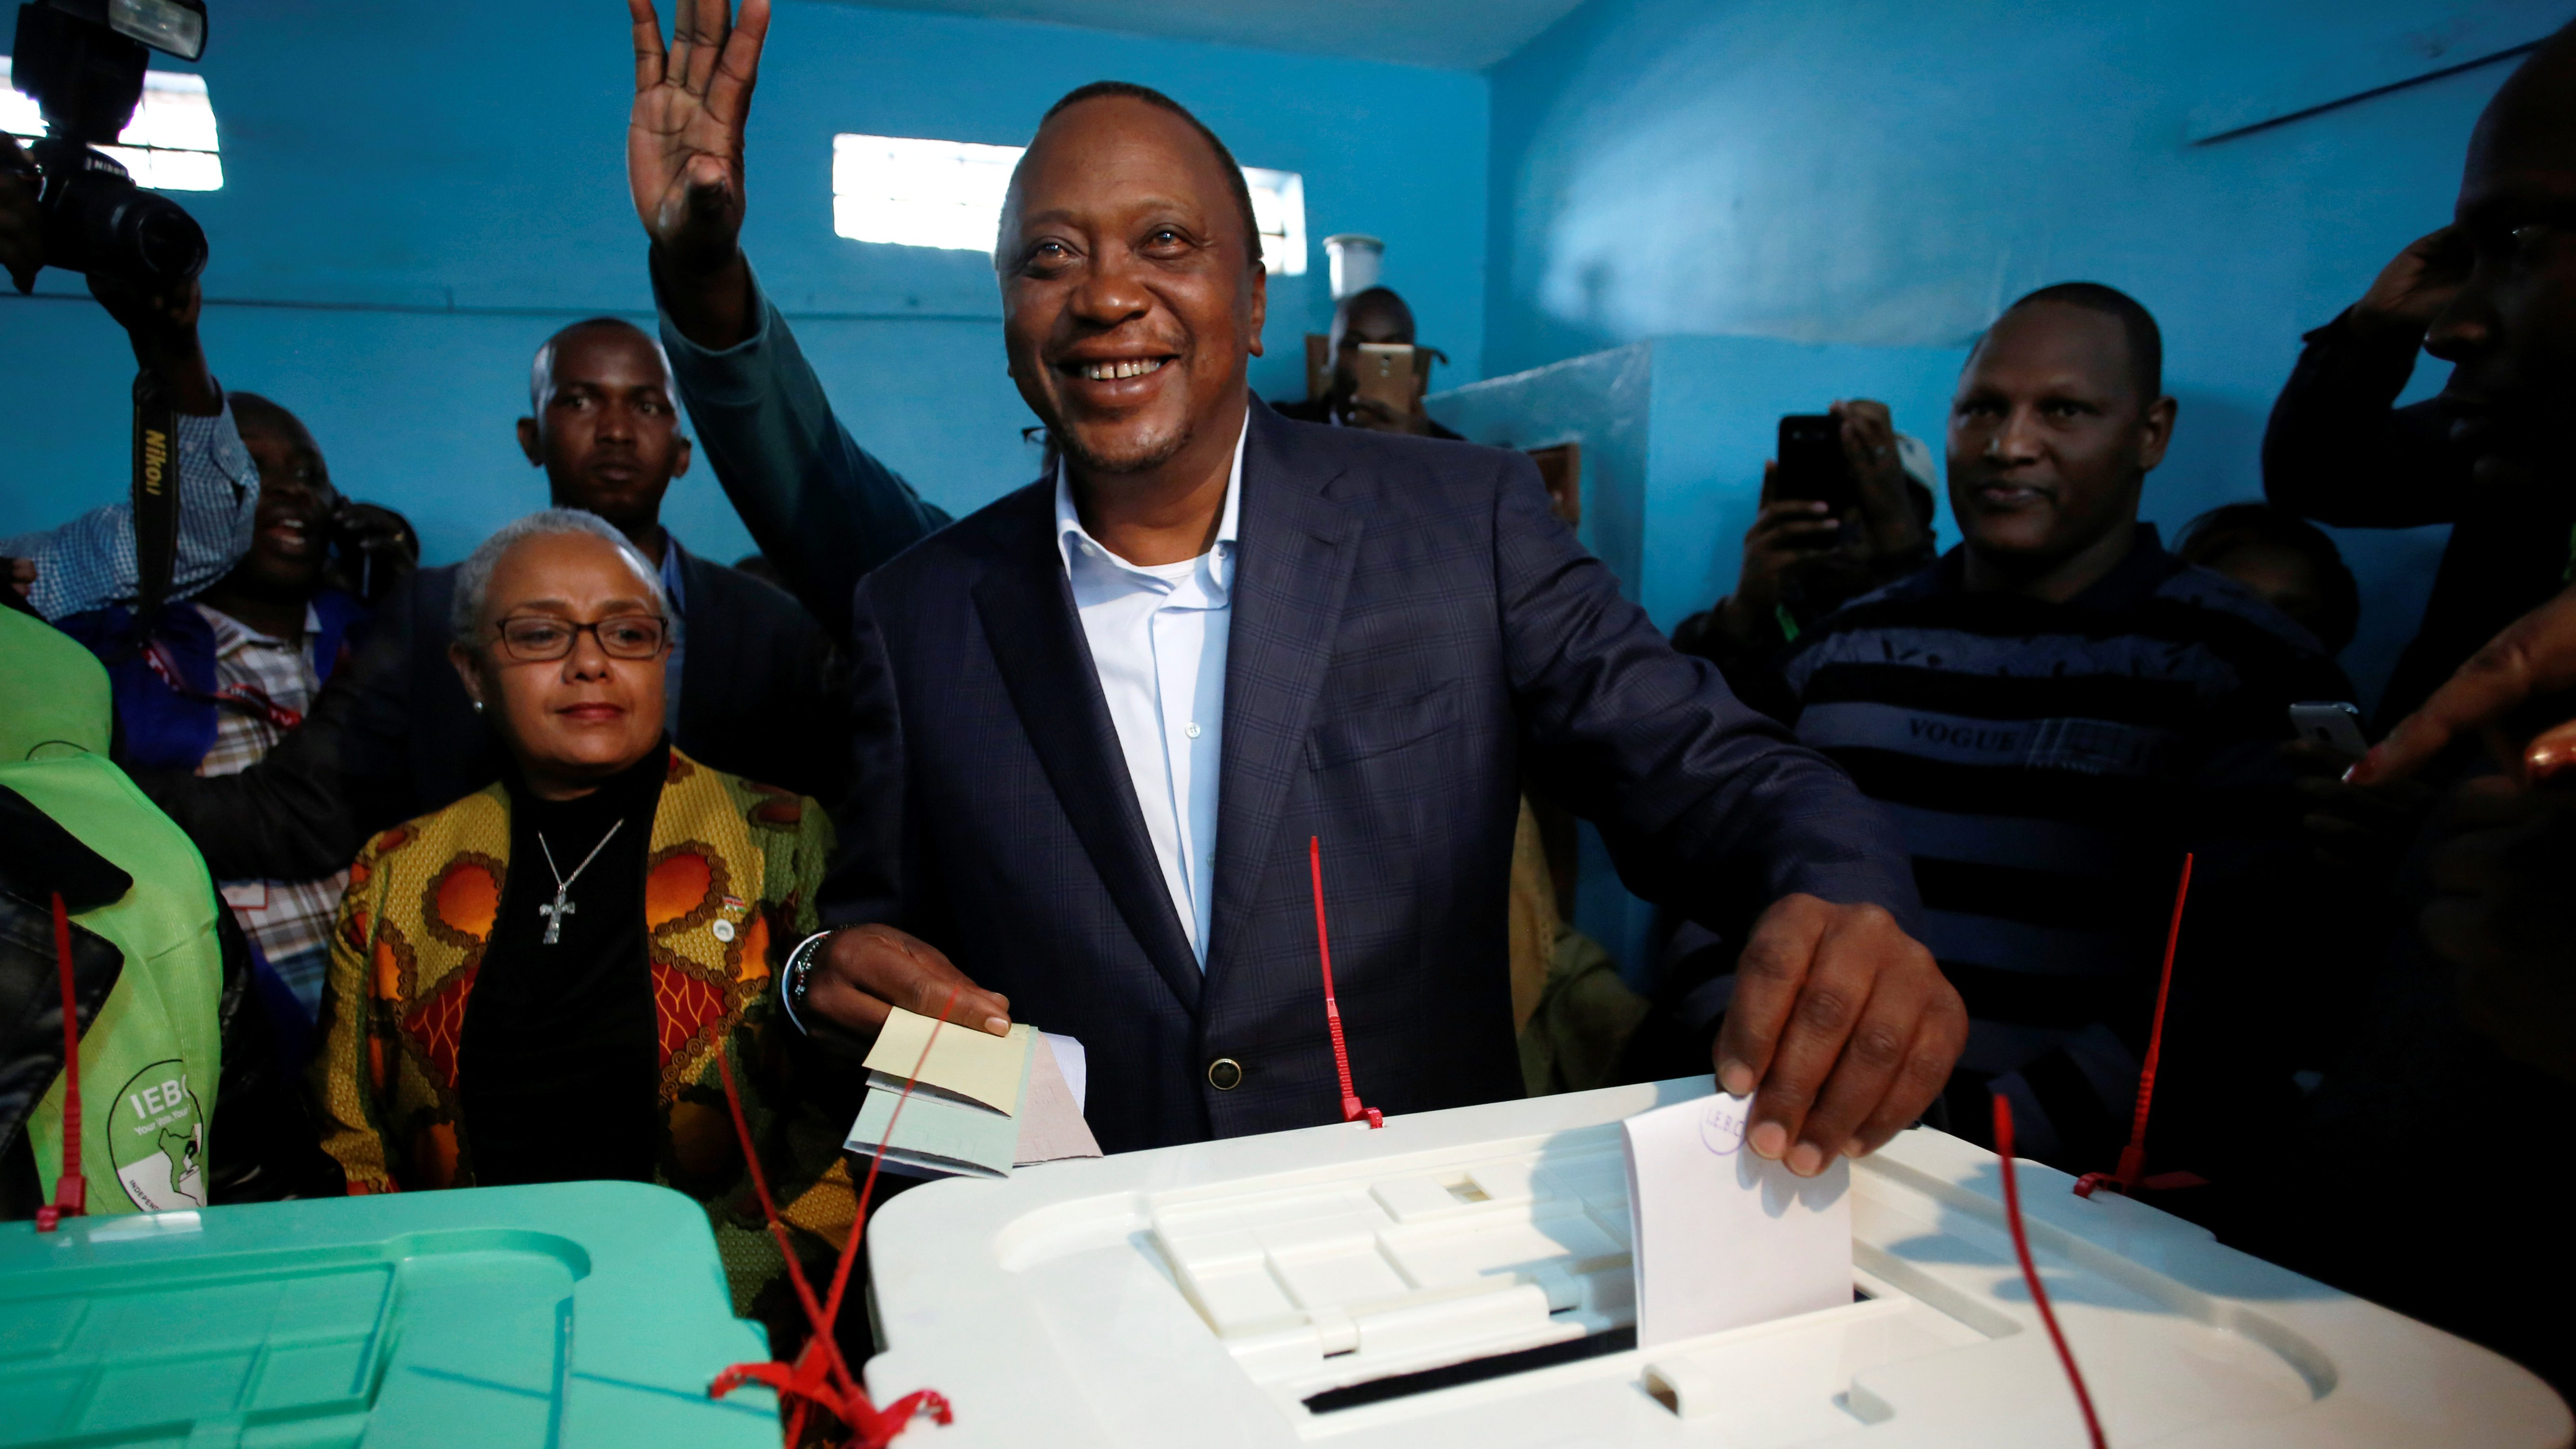 Kenya's President Uhuru Kenyatta casts his vote during the presidential election at a polling station in Gatundu, Kenya August 8, 2017.